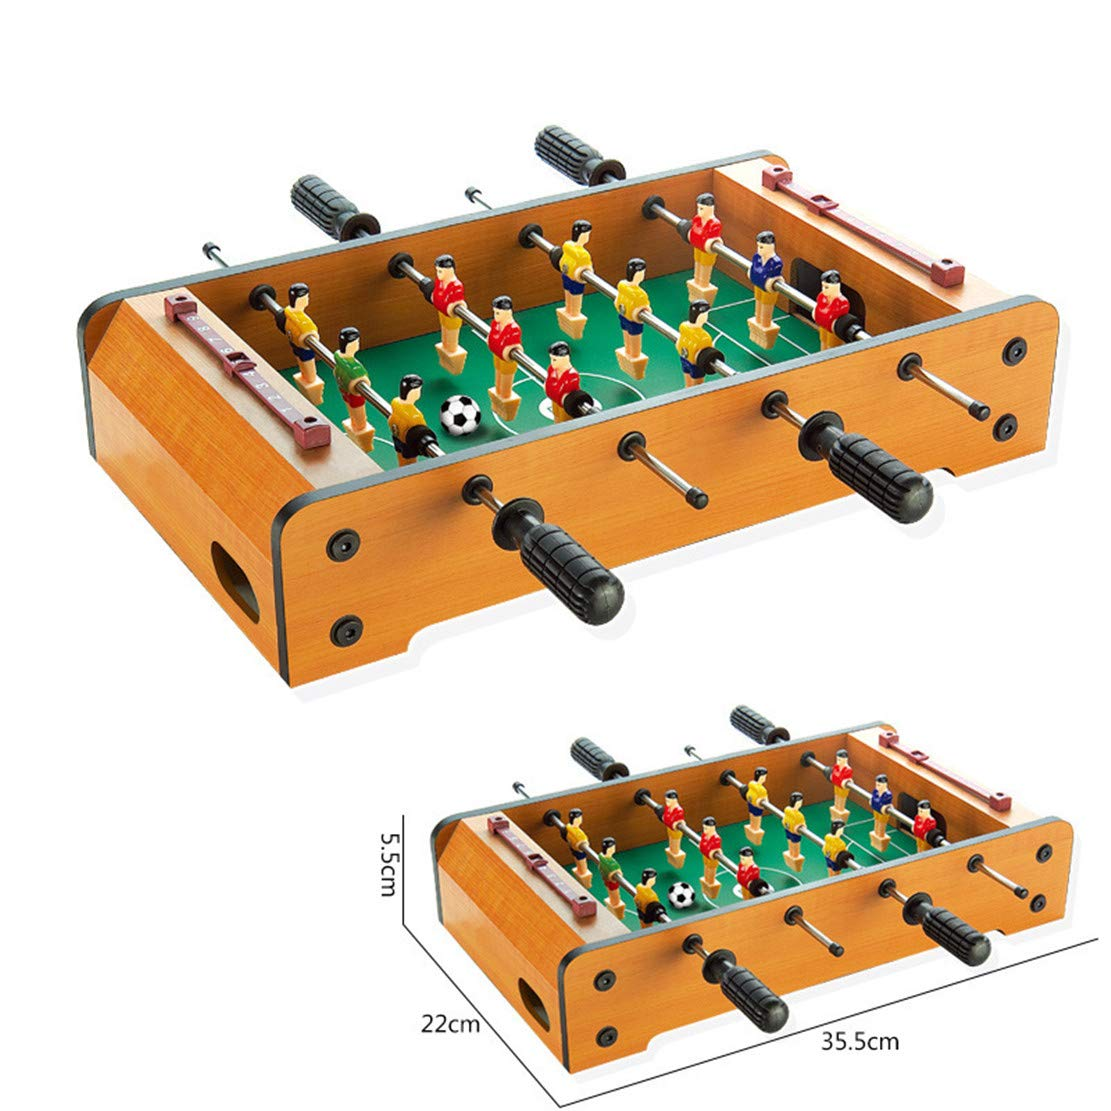 MSTQ Large Football Table Wooden Indoor Soccer Table 6 Football Table Double Battle Desktop Board Game Children Sports Toys 9 Models (6086, L) by MSTQ